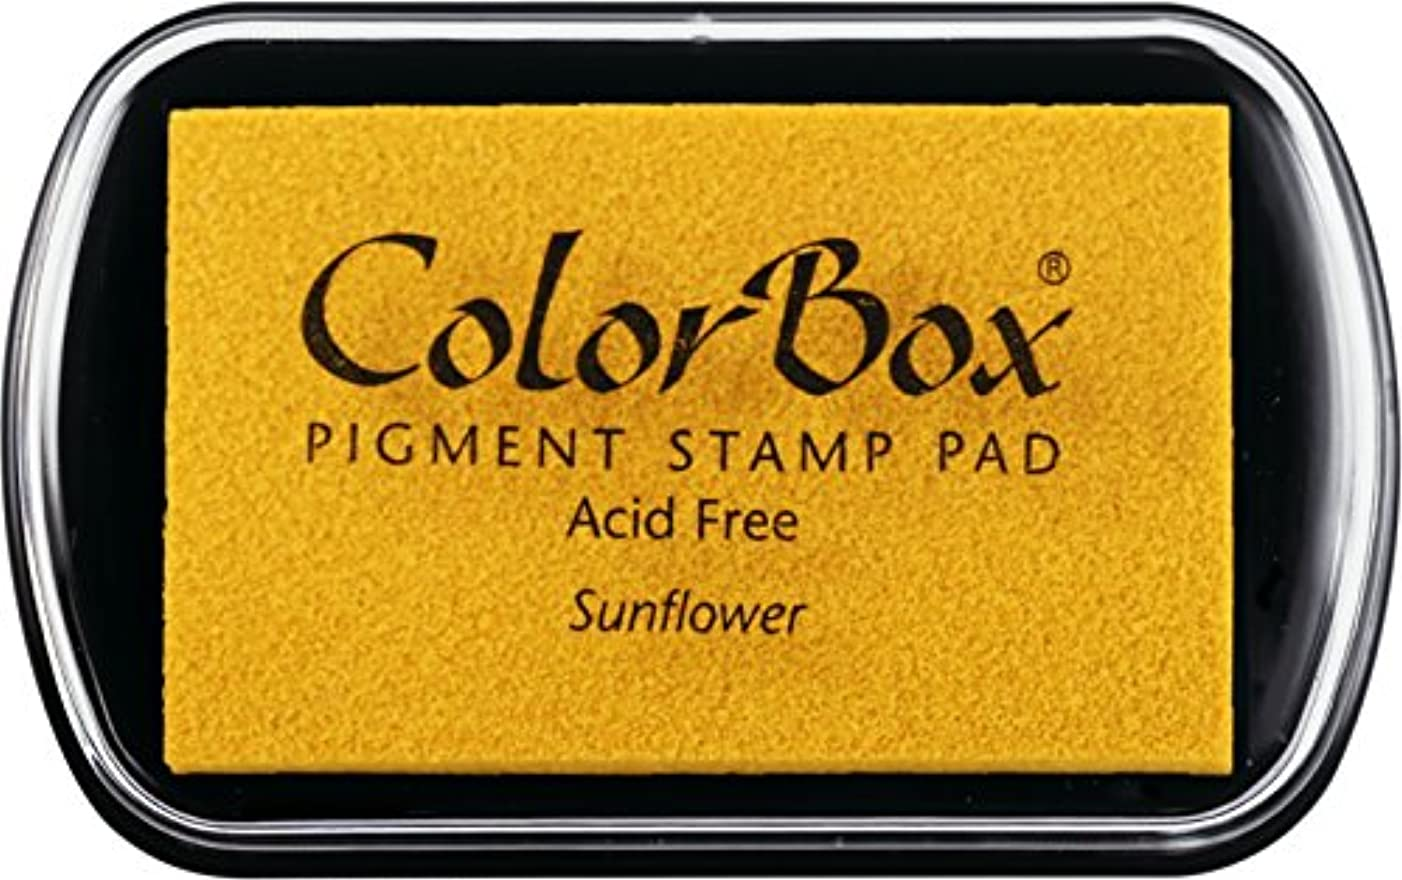 ColorBox Classic Pigment Ink Pad, Full Size, Sunflower